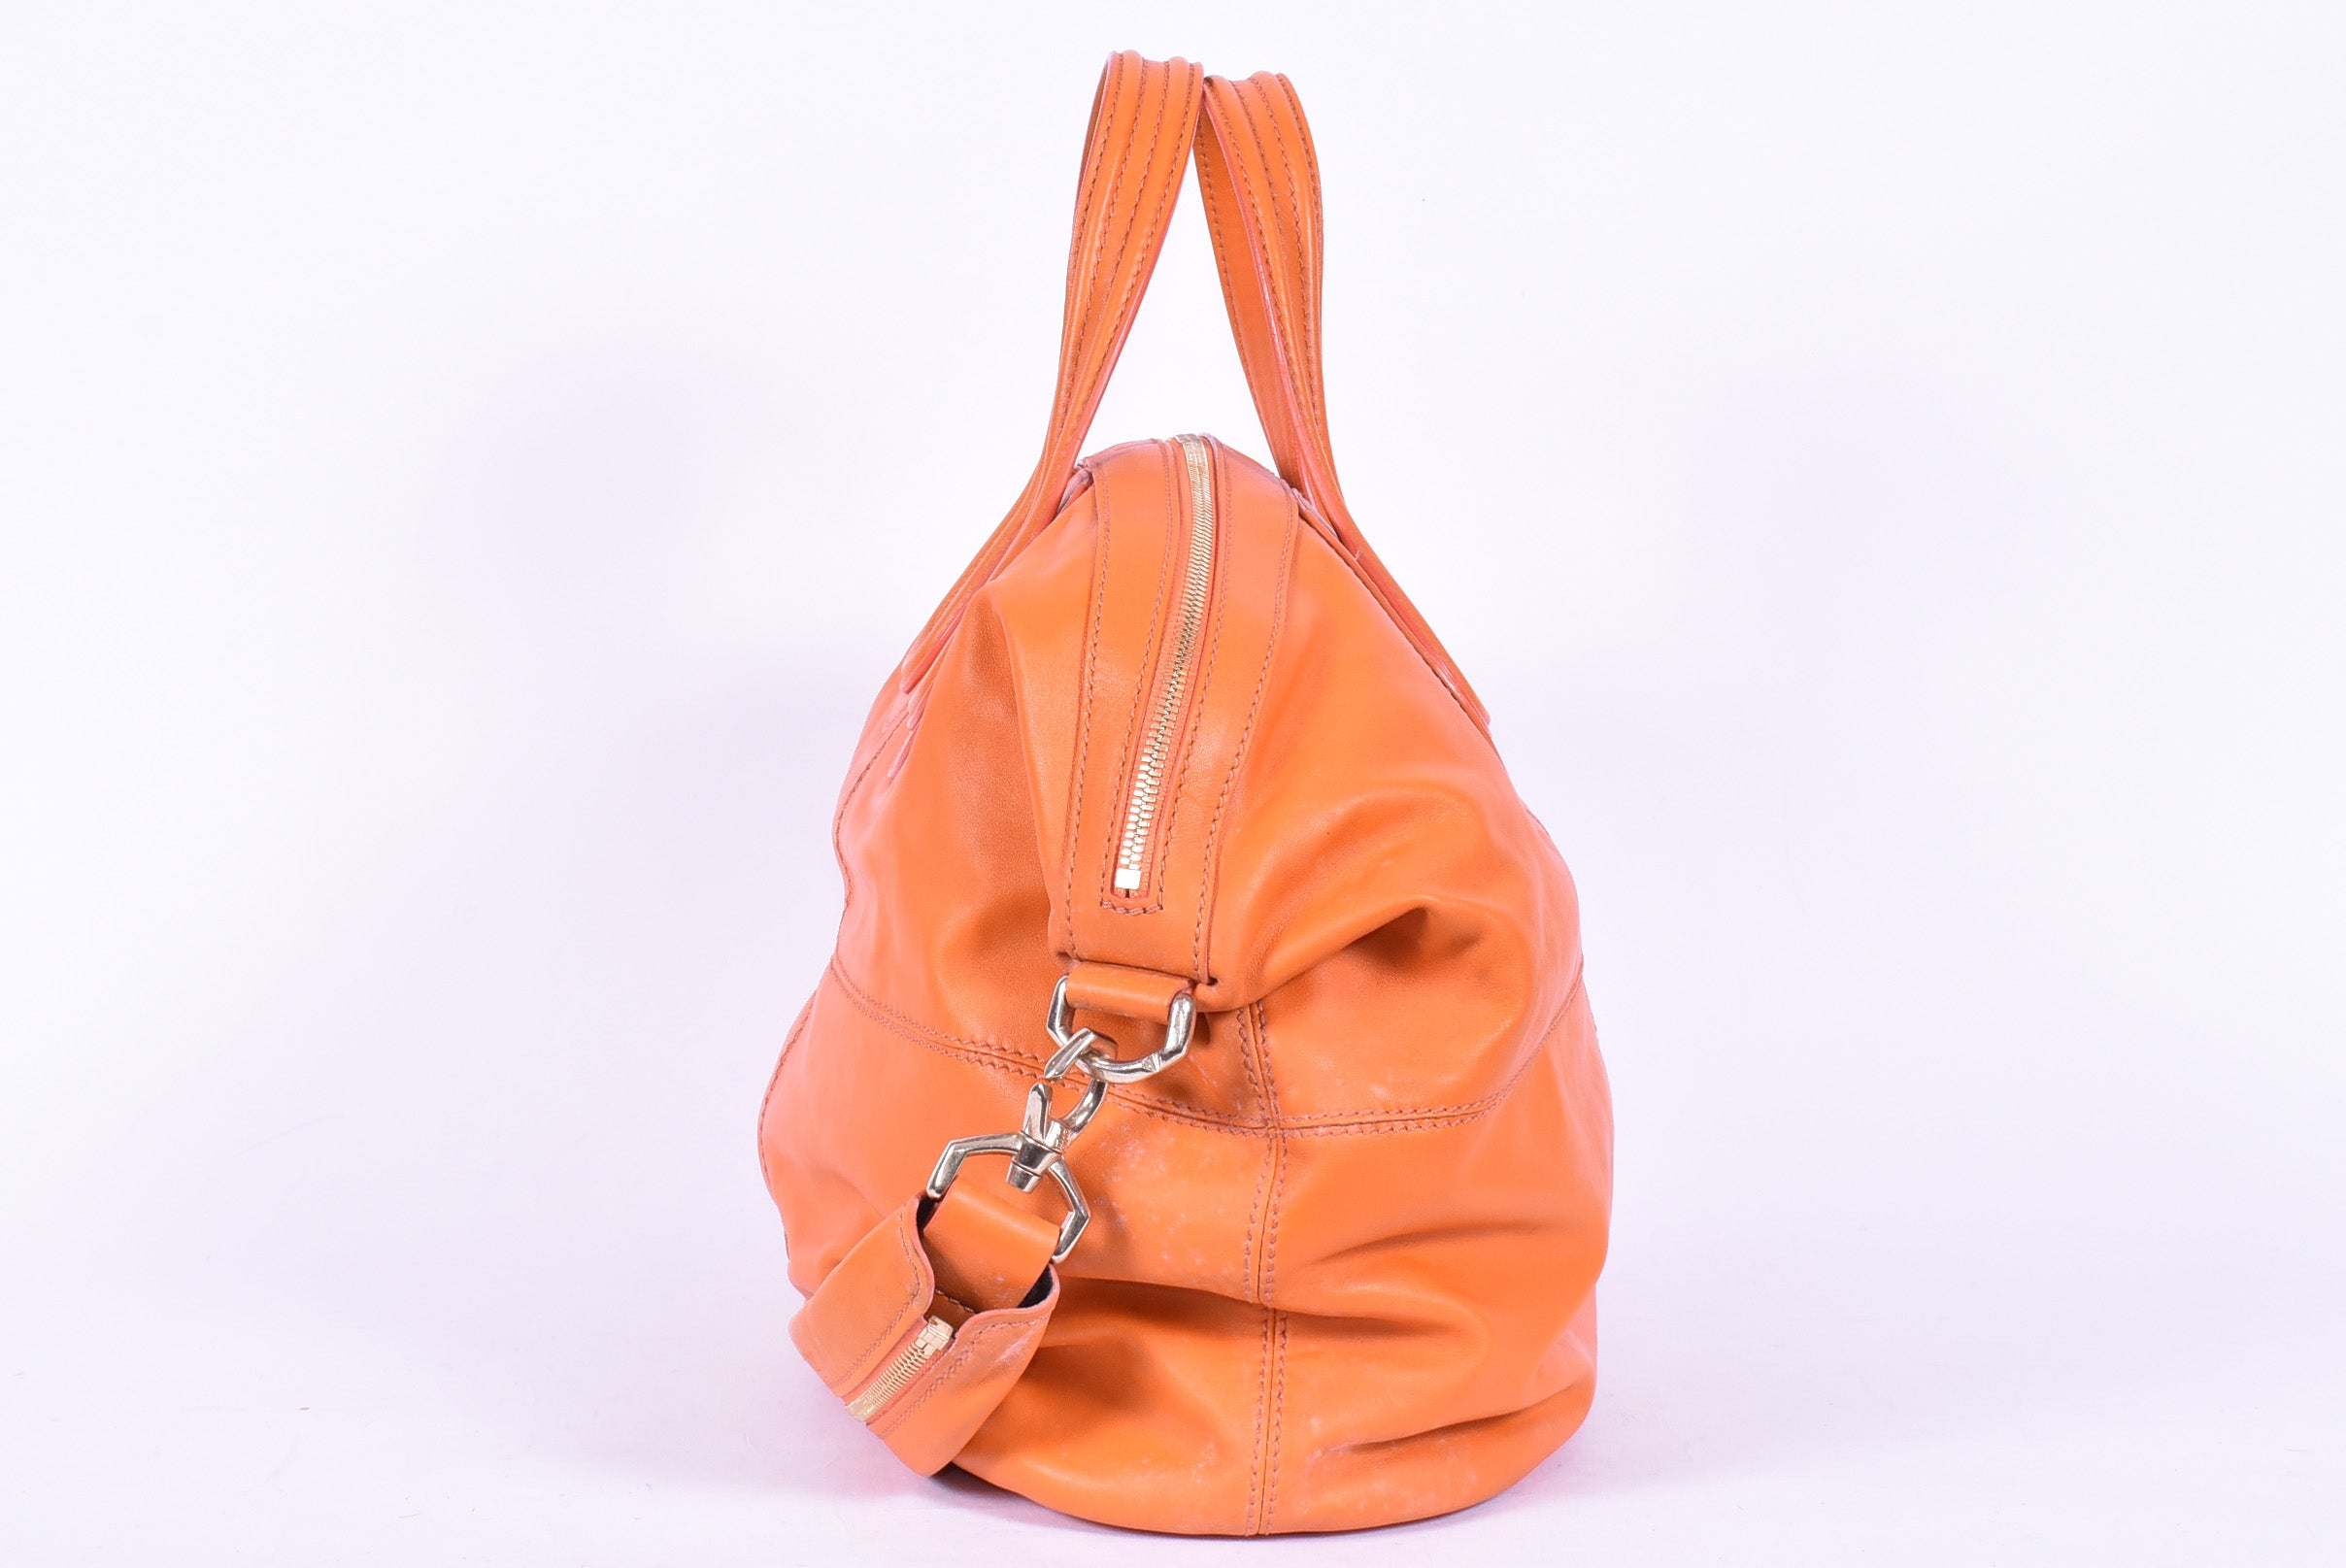 Givenchy Orange and Golden Details Bag